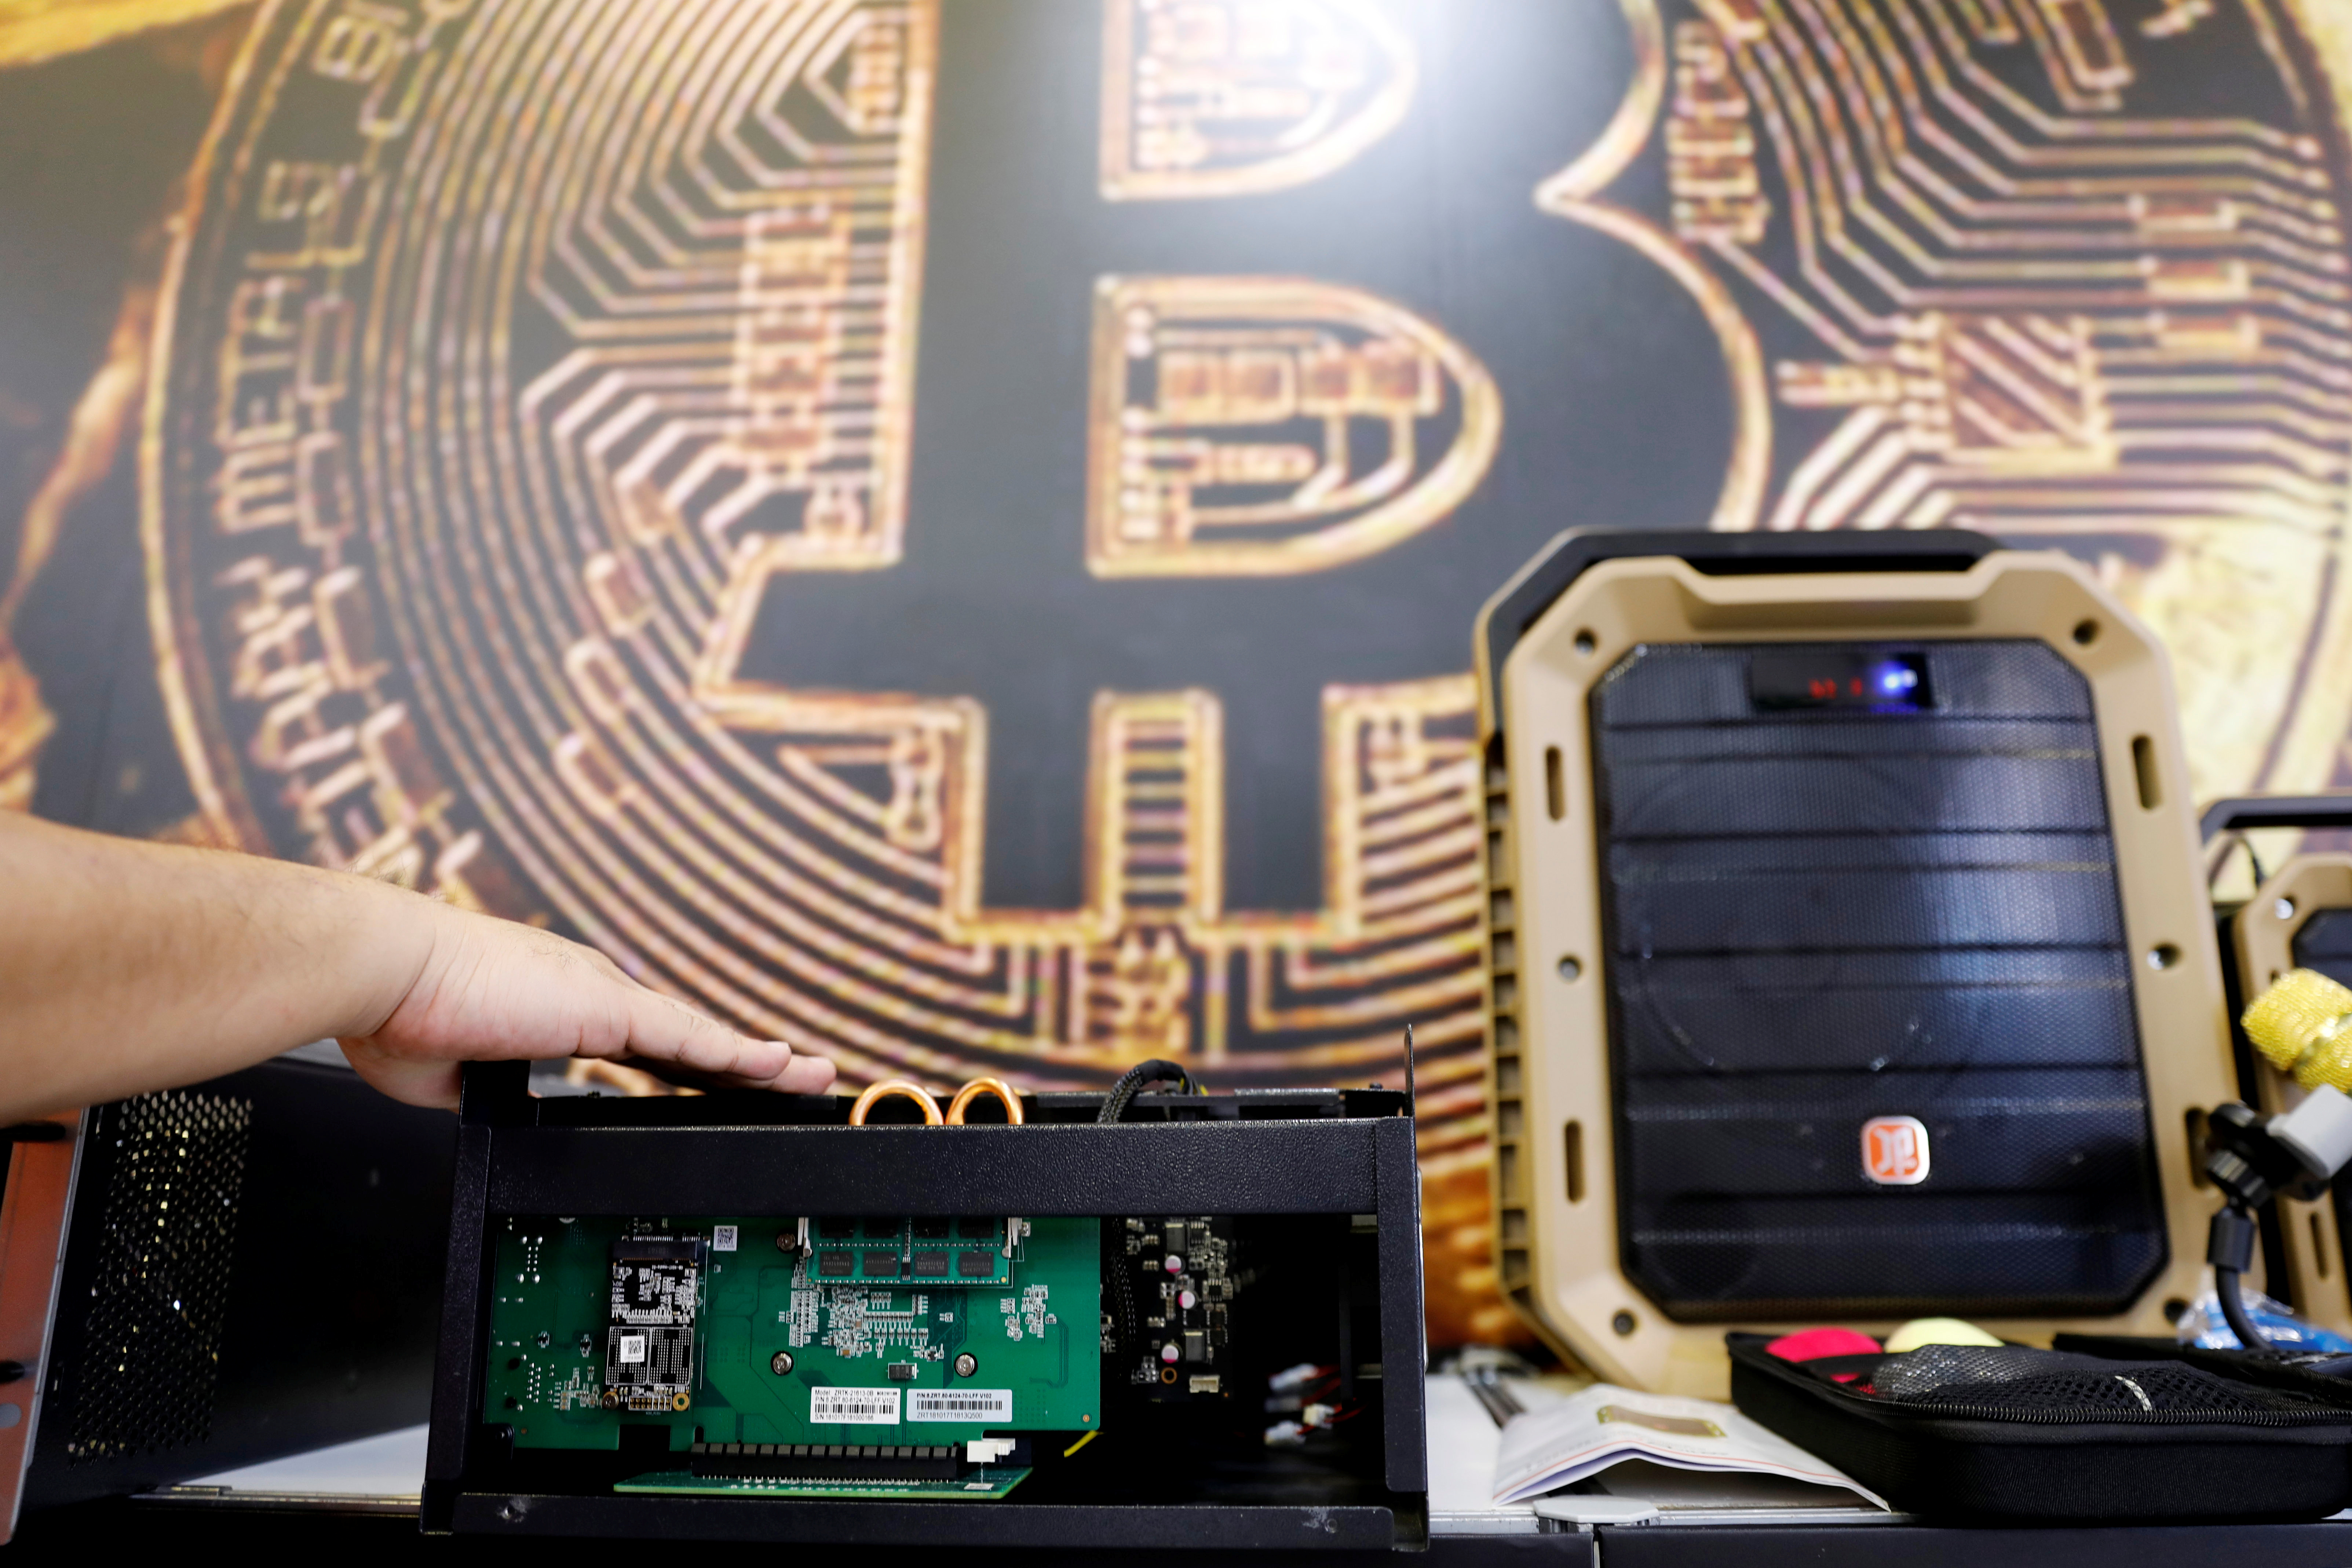 A cryptocurrency mining computer is seen in front of bitcoin logo during the annual Computex computer exhibition in Taipei, Taiwan June 5, 2018. REUTERS/Tyrone Siu - RC115698ECF0